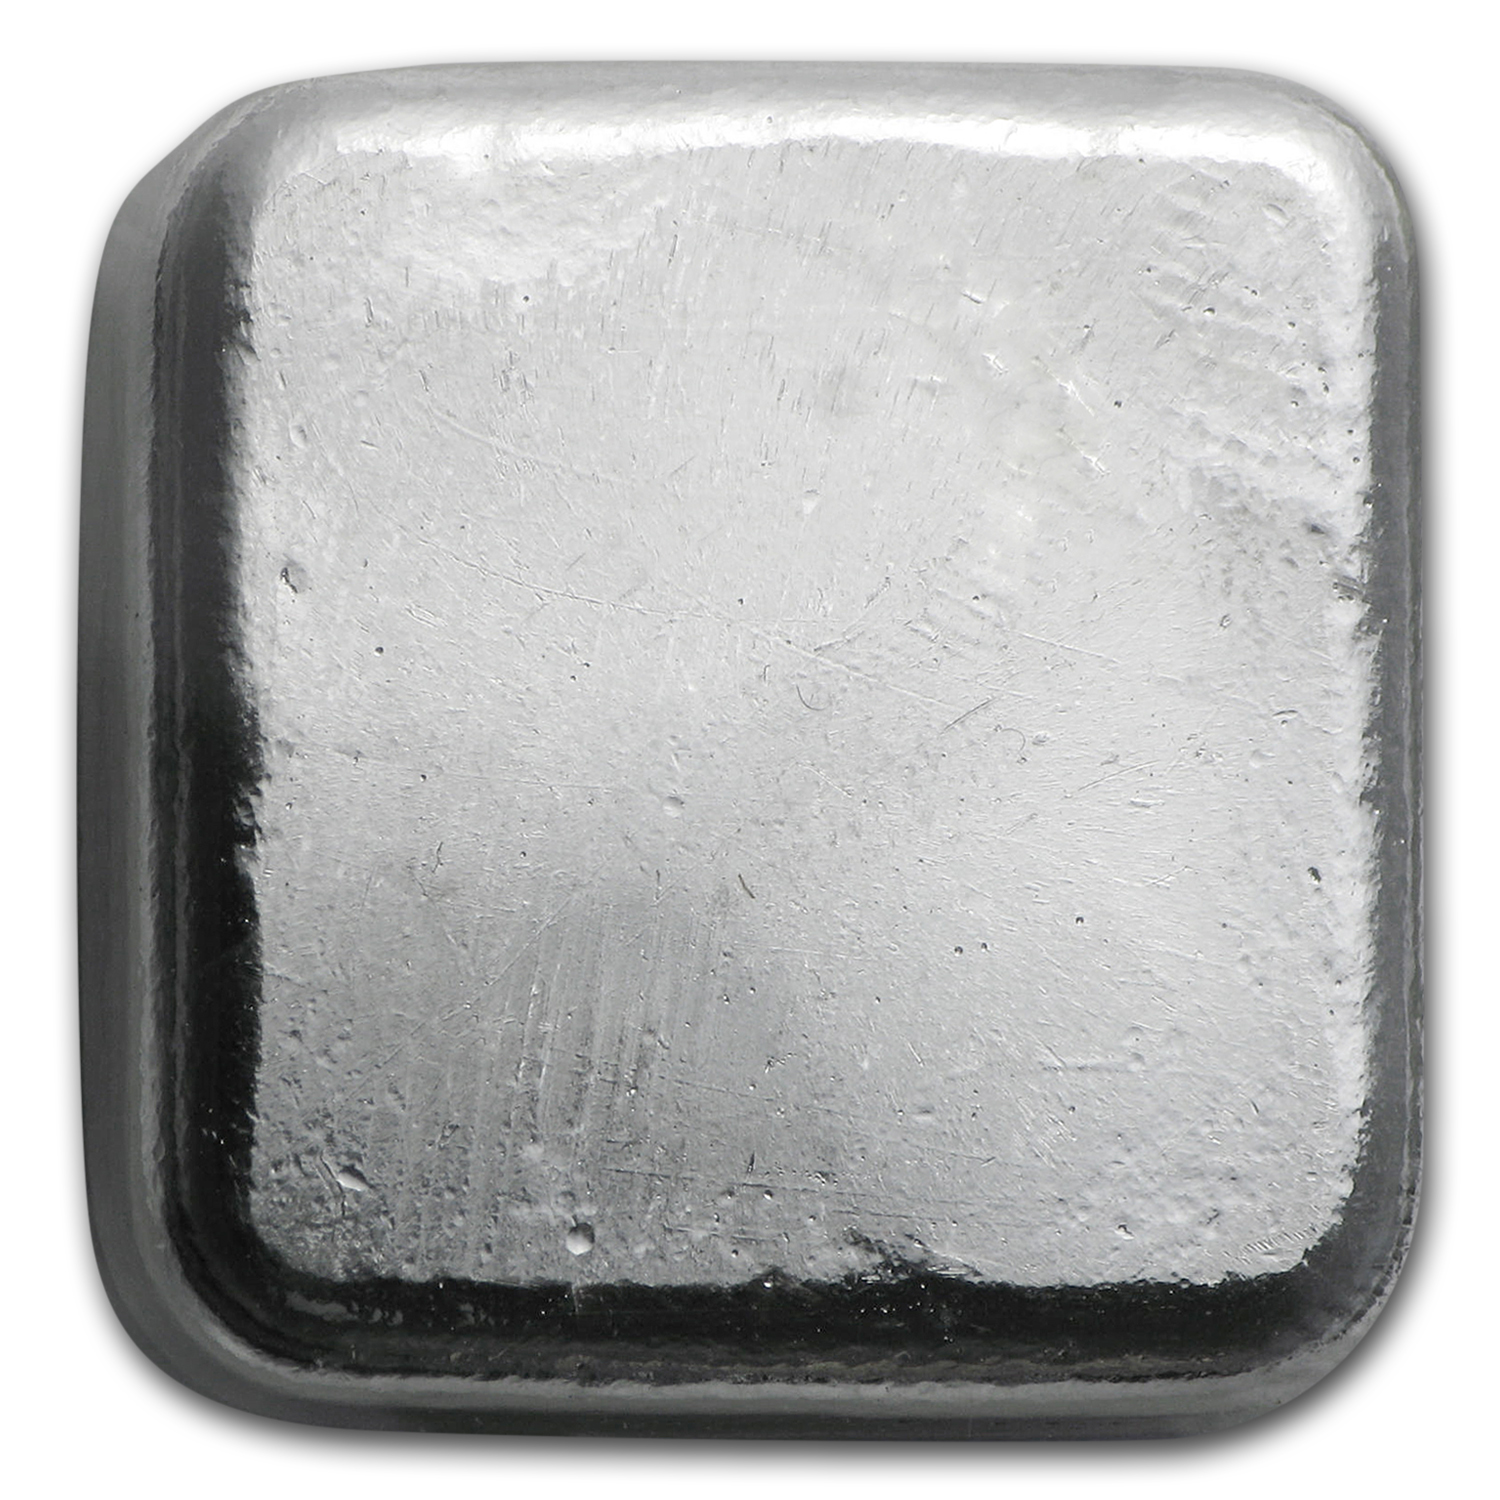 1 oz Silver Square Bar - Southern Cross Bullion (Cast)